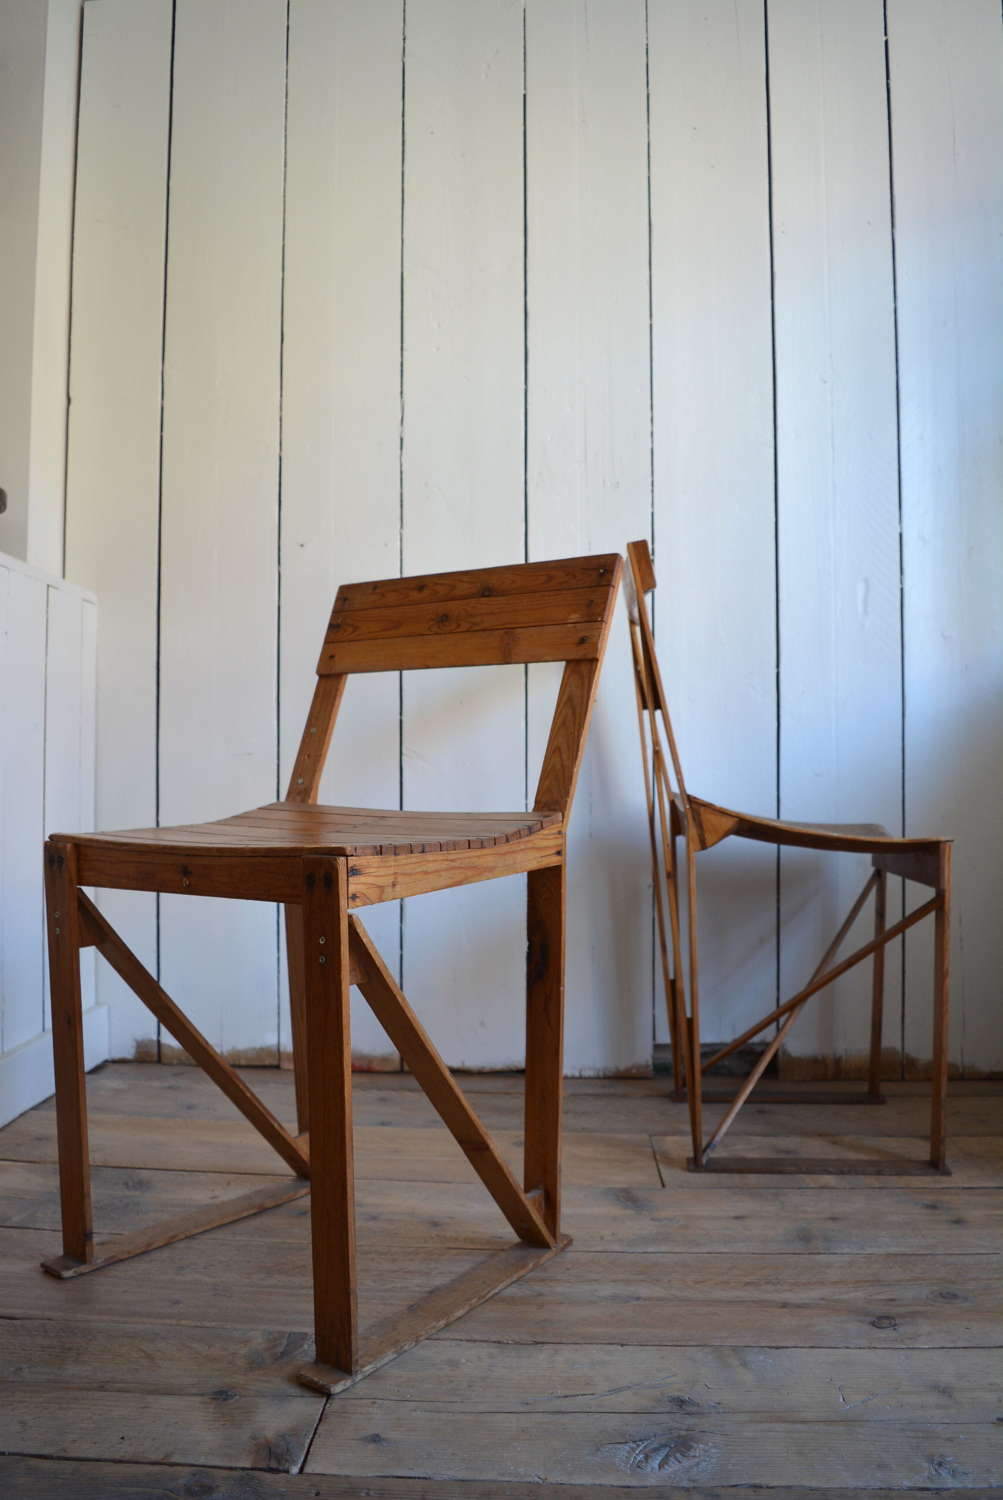 PAIR OF PROTOTYPE STRIP PINE CHAIRS 1980